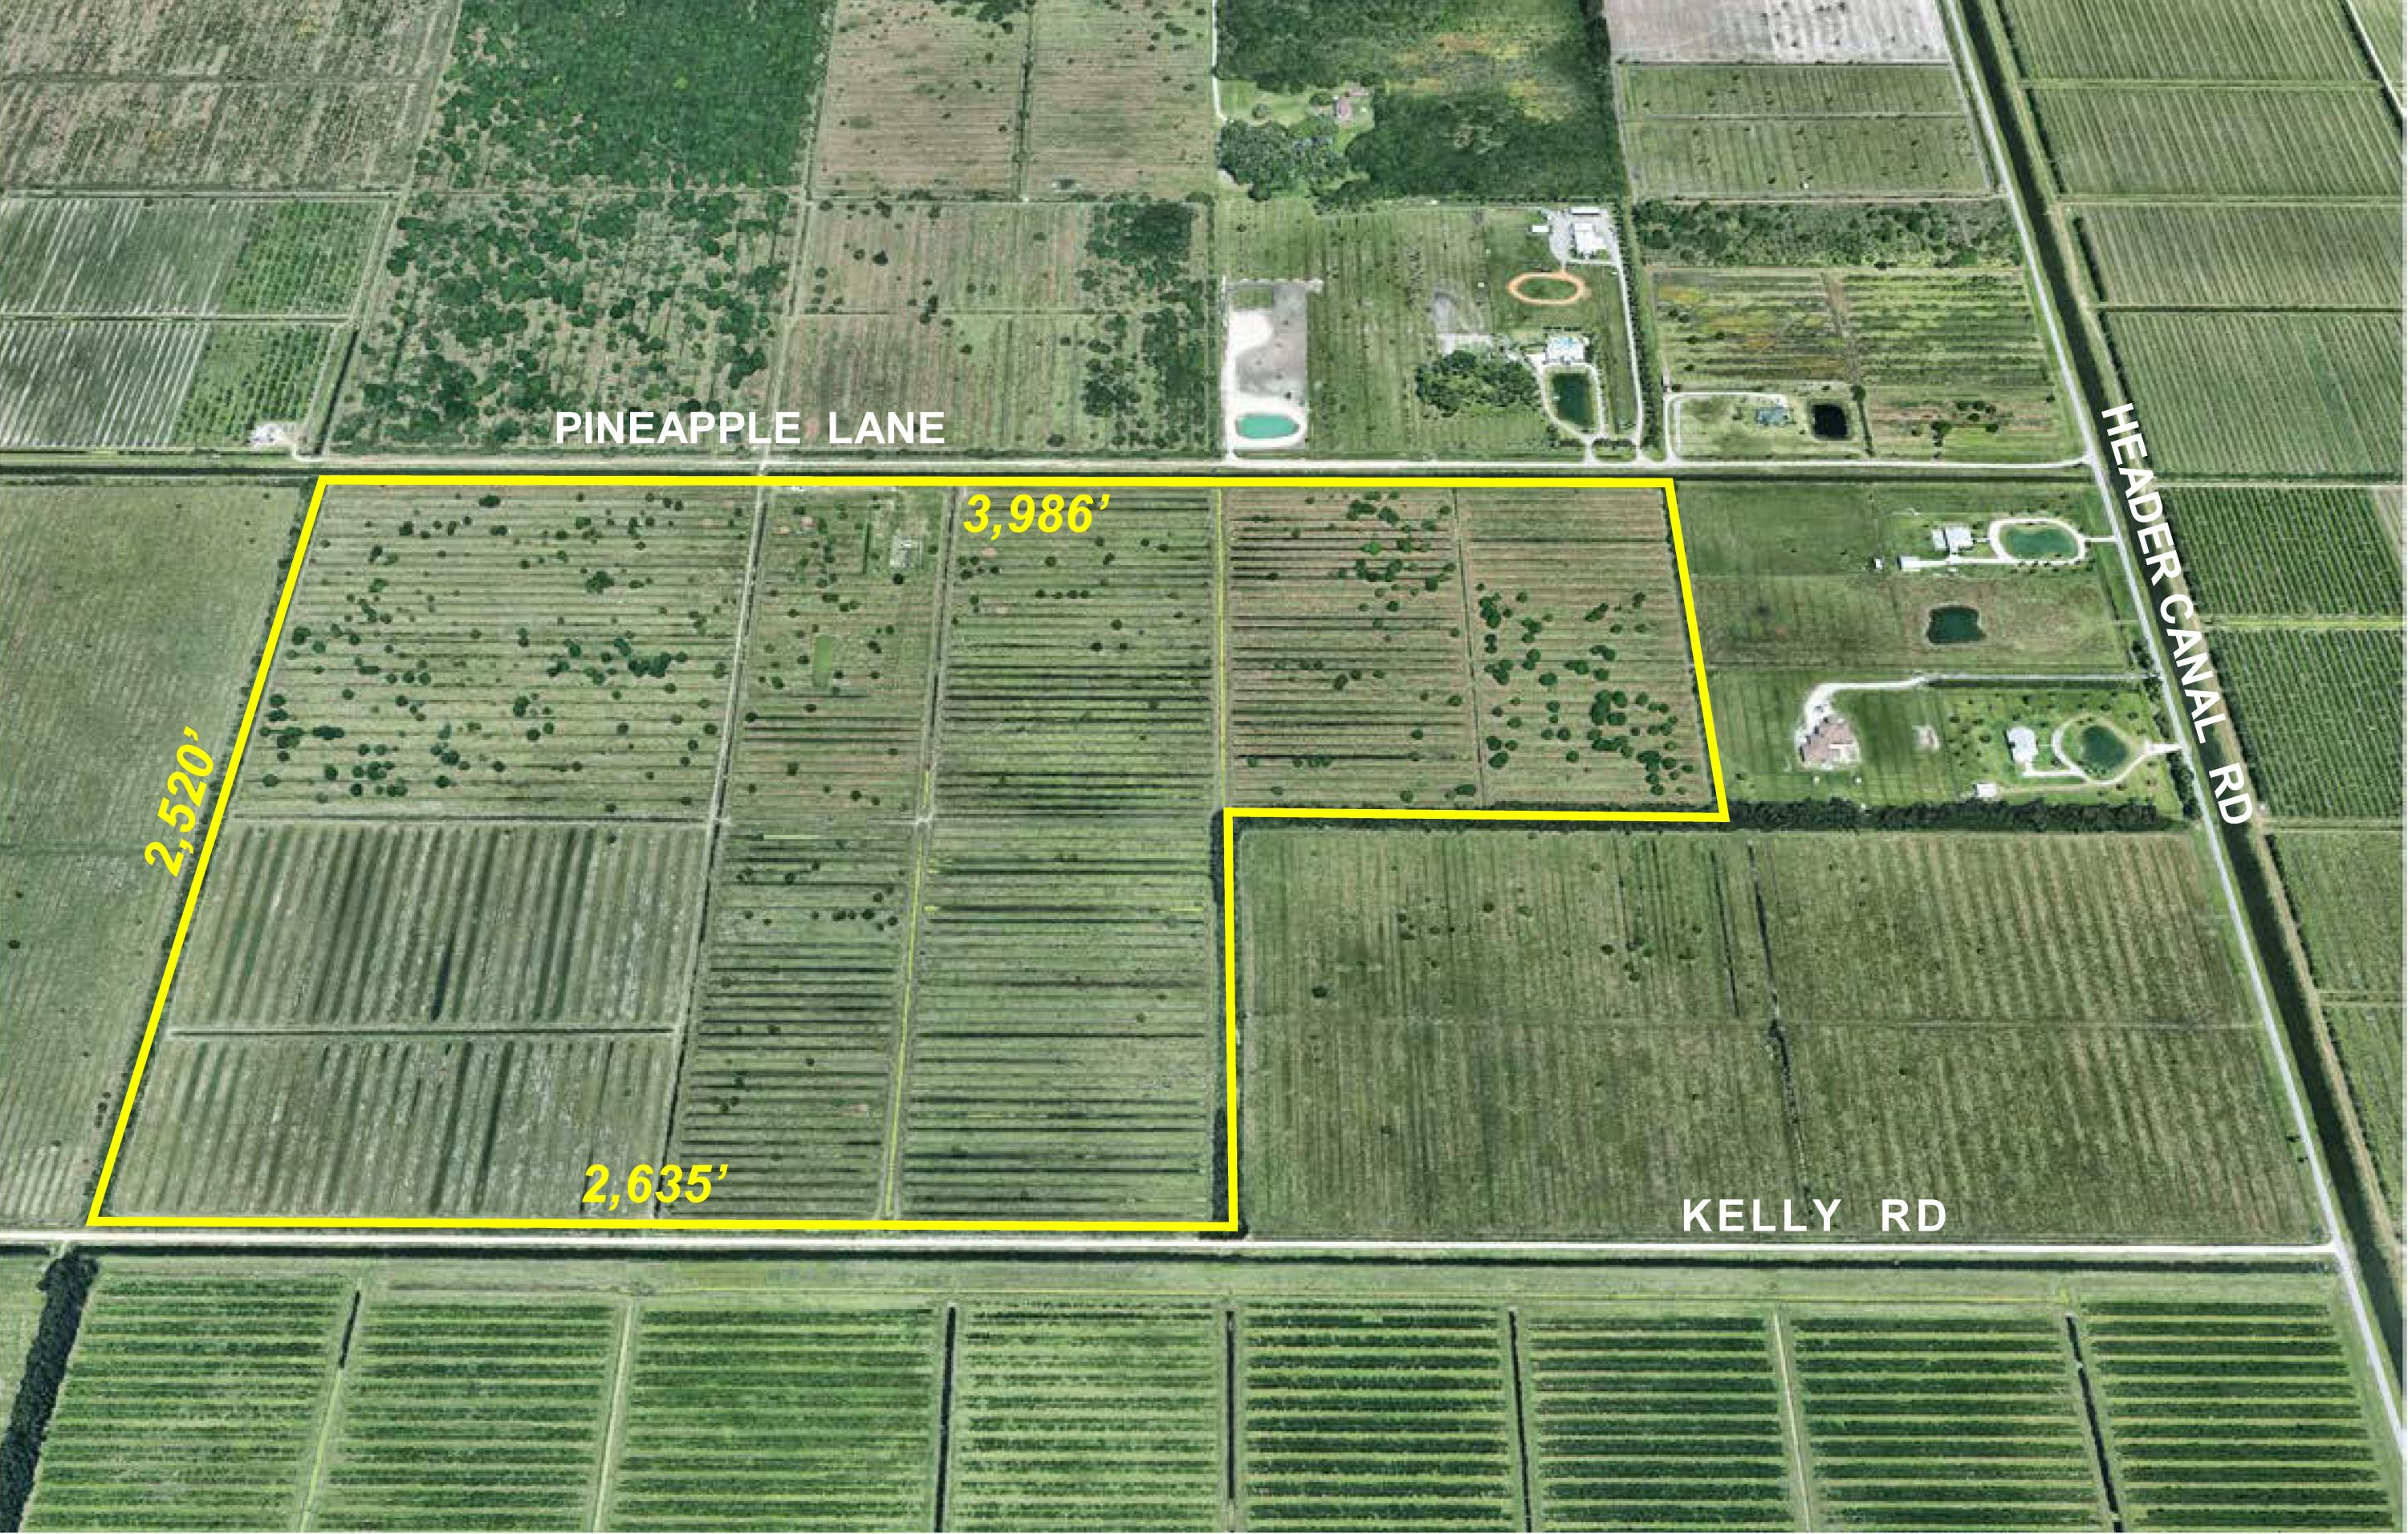 000 Kelly Road, Fort Pierce, FL 34945